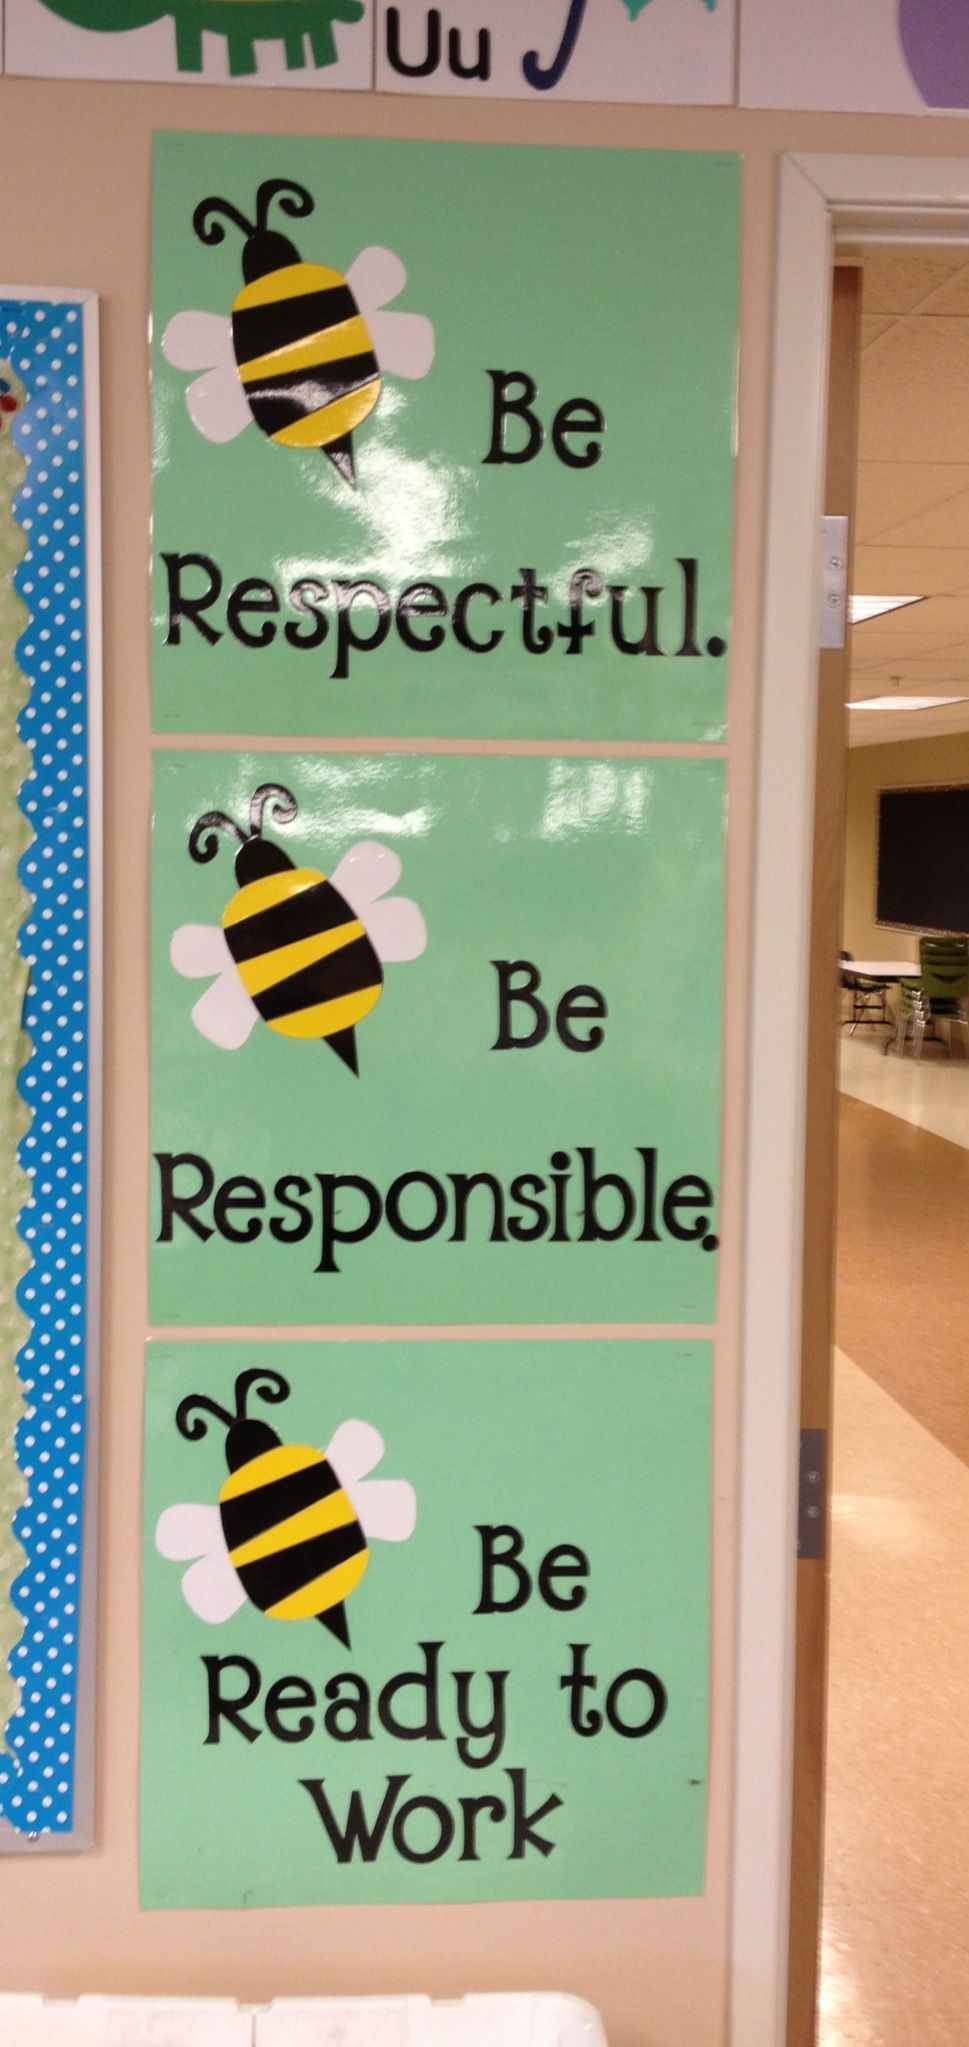 The 3 Bee Rules Be Respectful Responsible Ready To Work